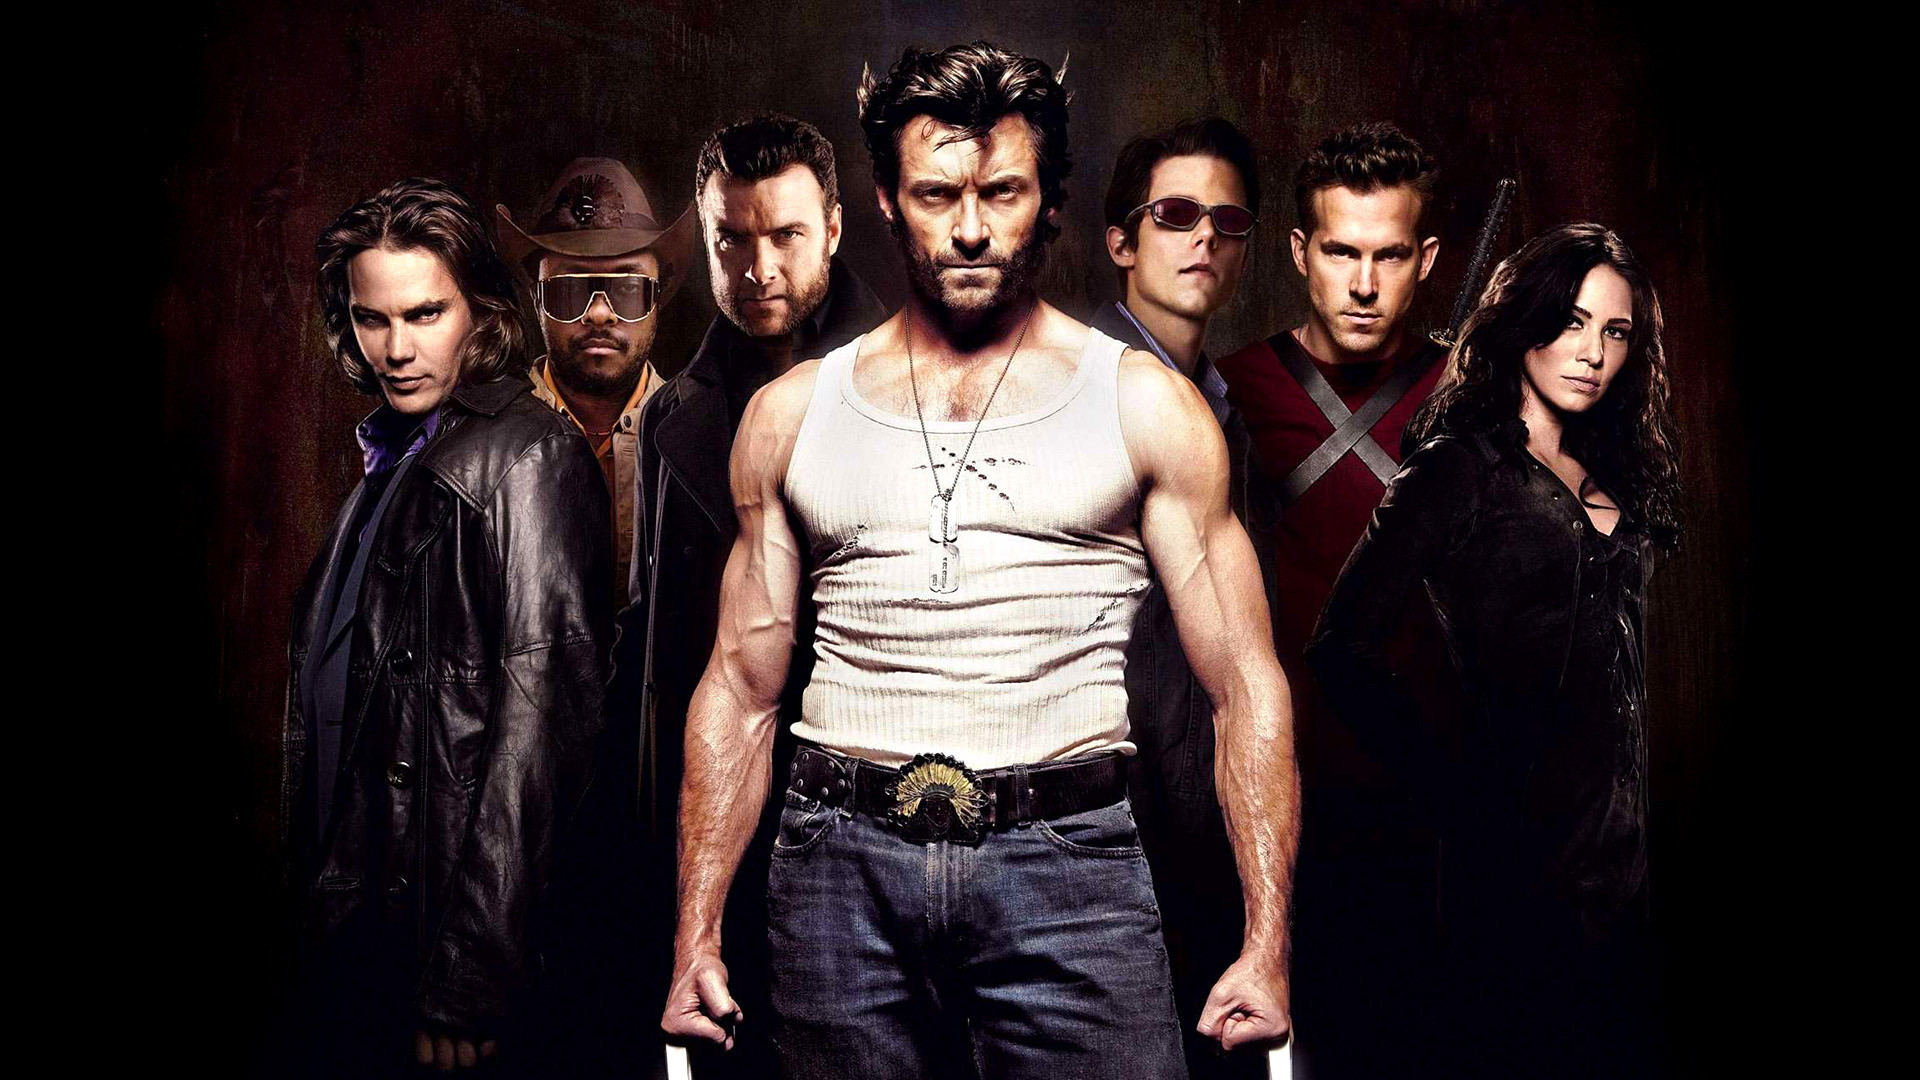 X Men Wolverine Hd Wallpaper Collection Yl Computing